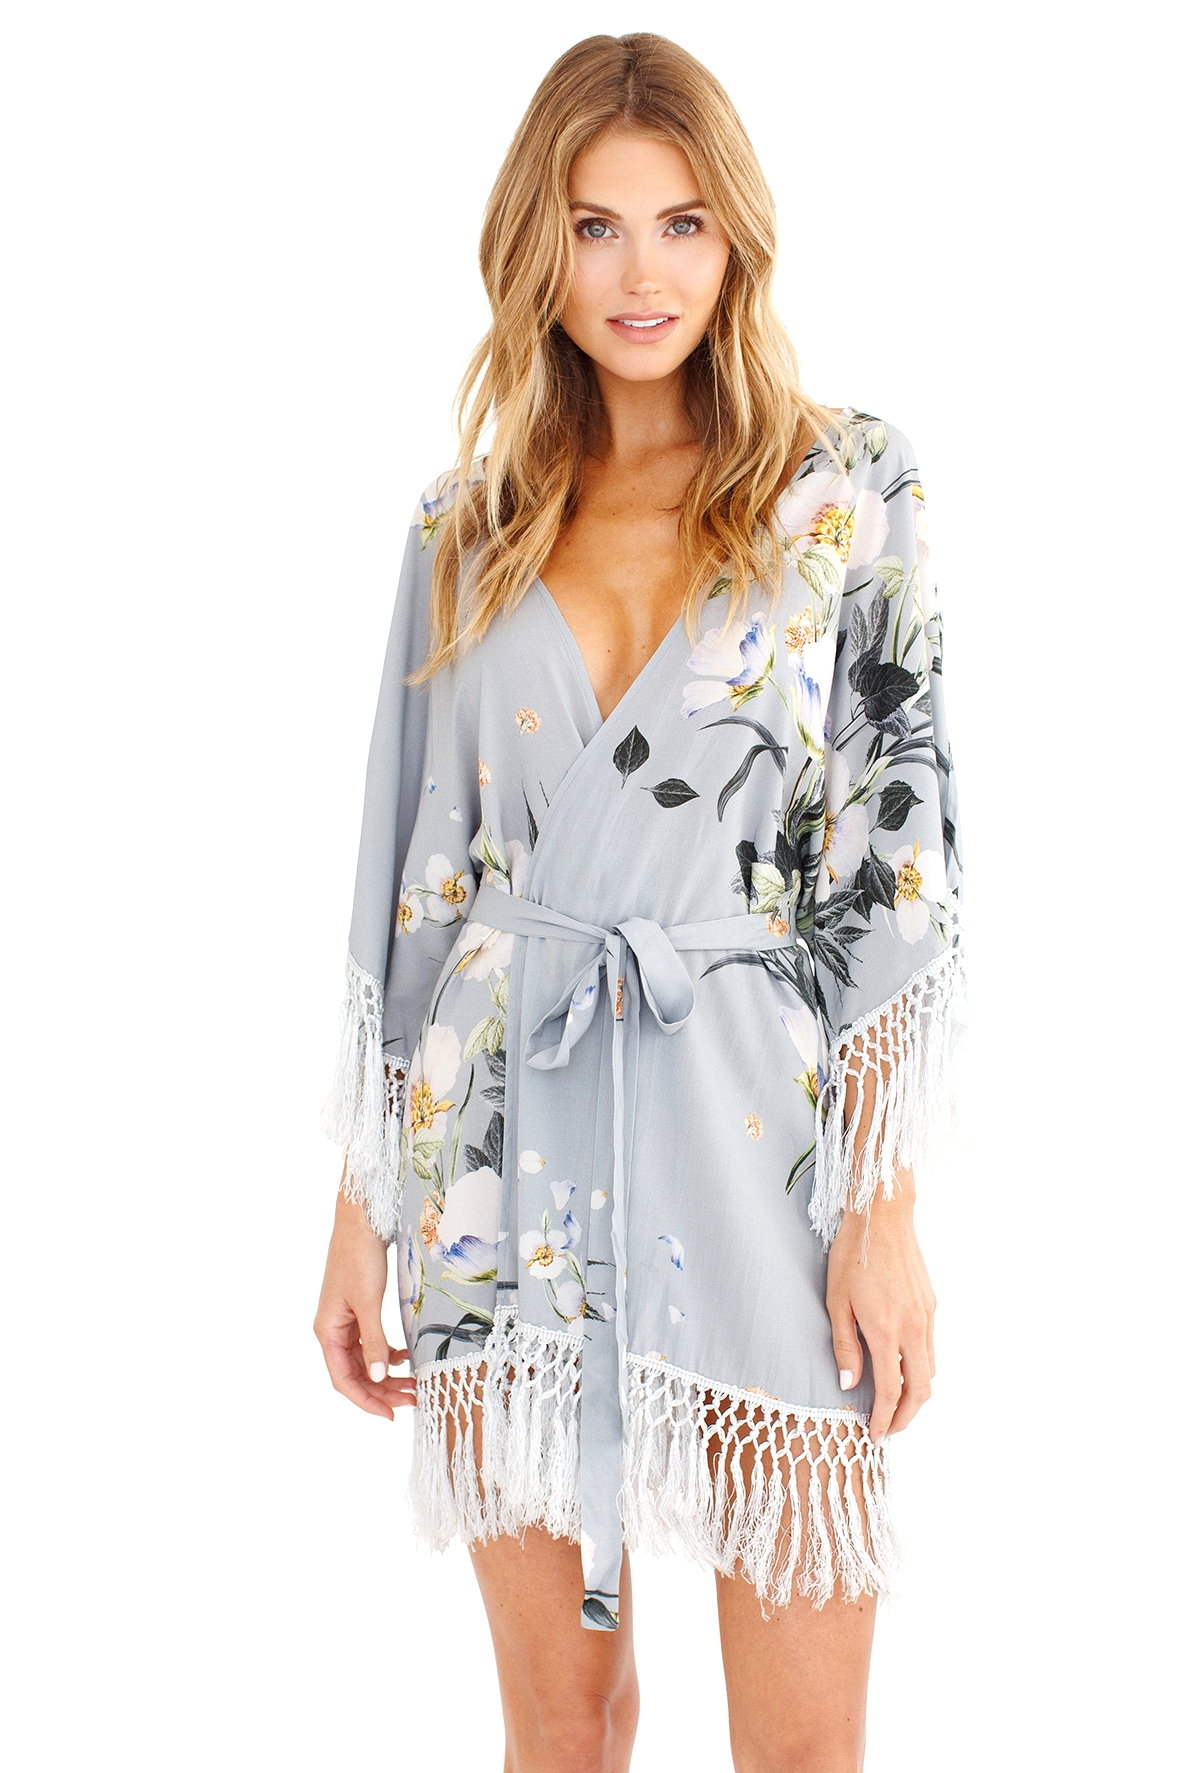 floral robe for bridesmaids and bride, fringed robe, blue robe